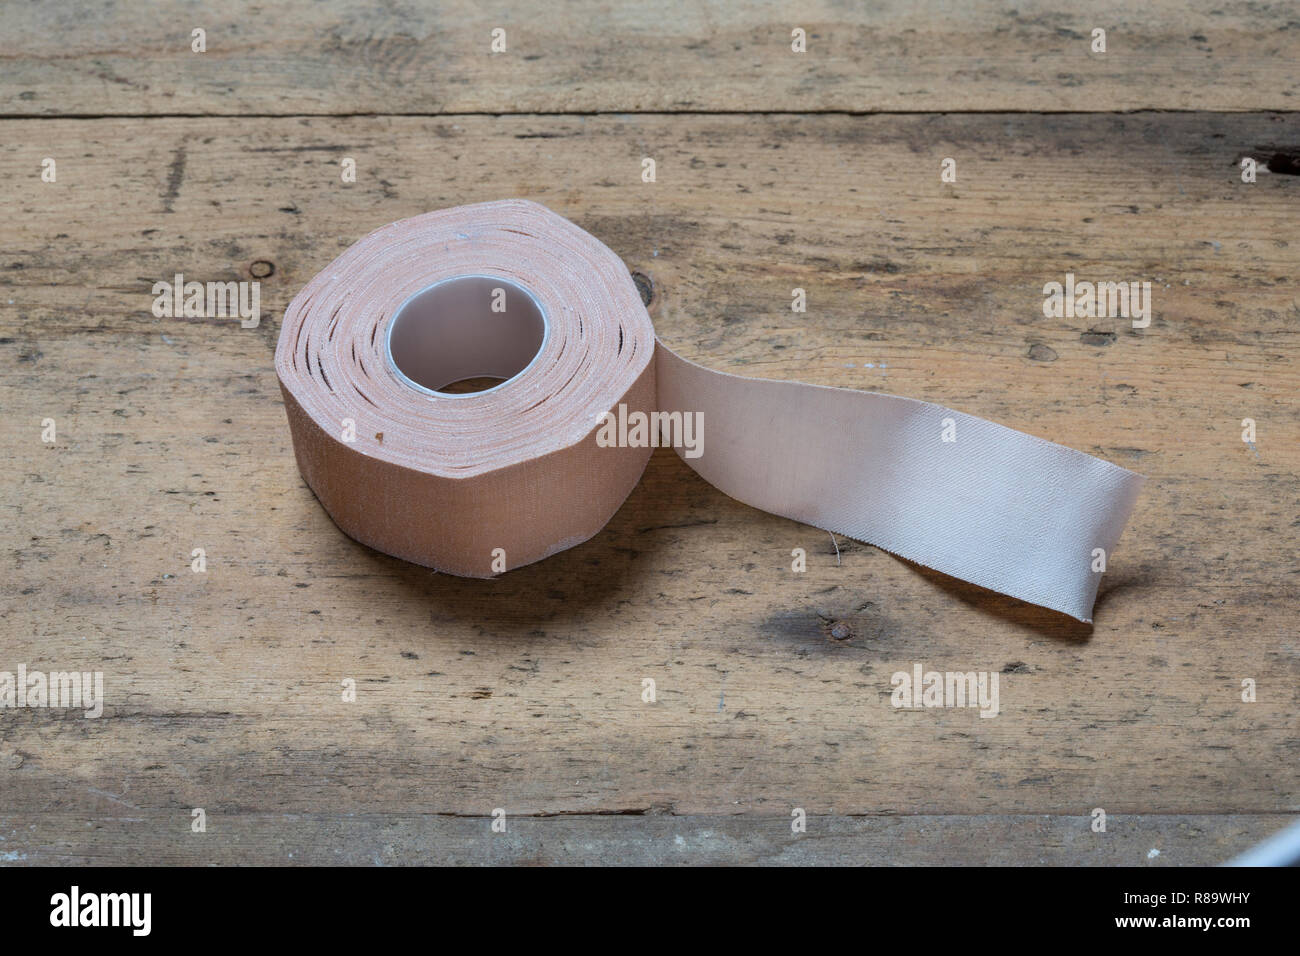 A roll of old medical sticky tape - Stock Image